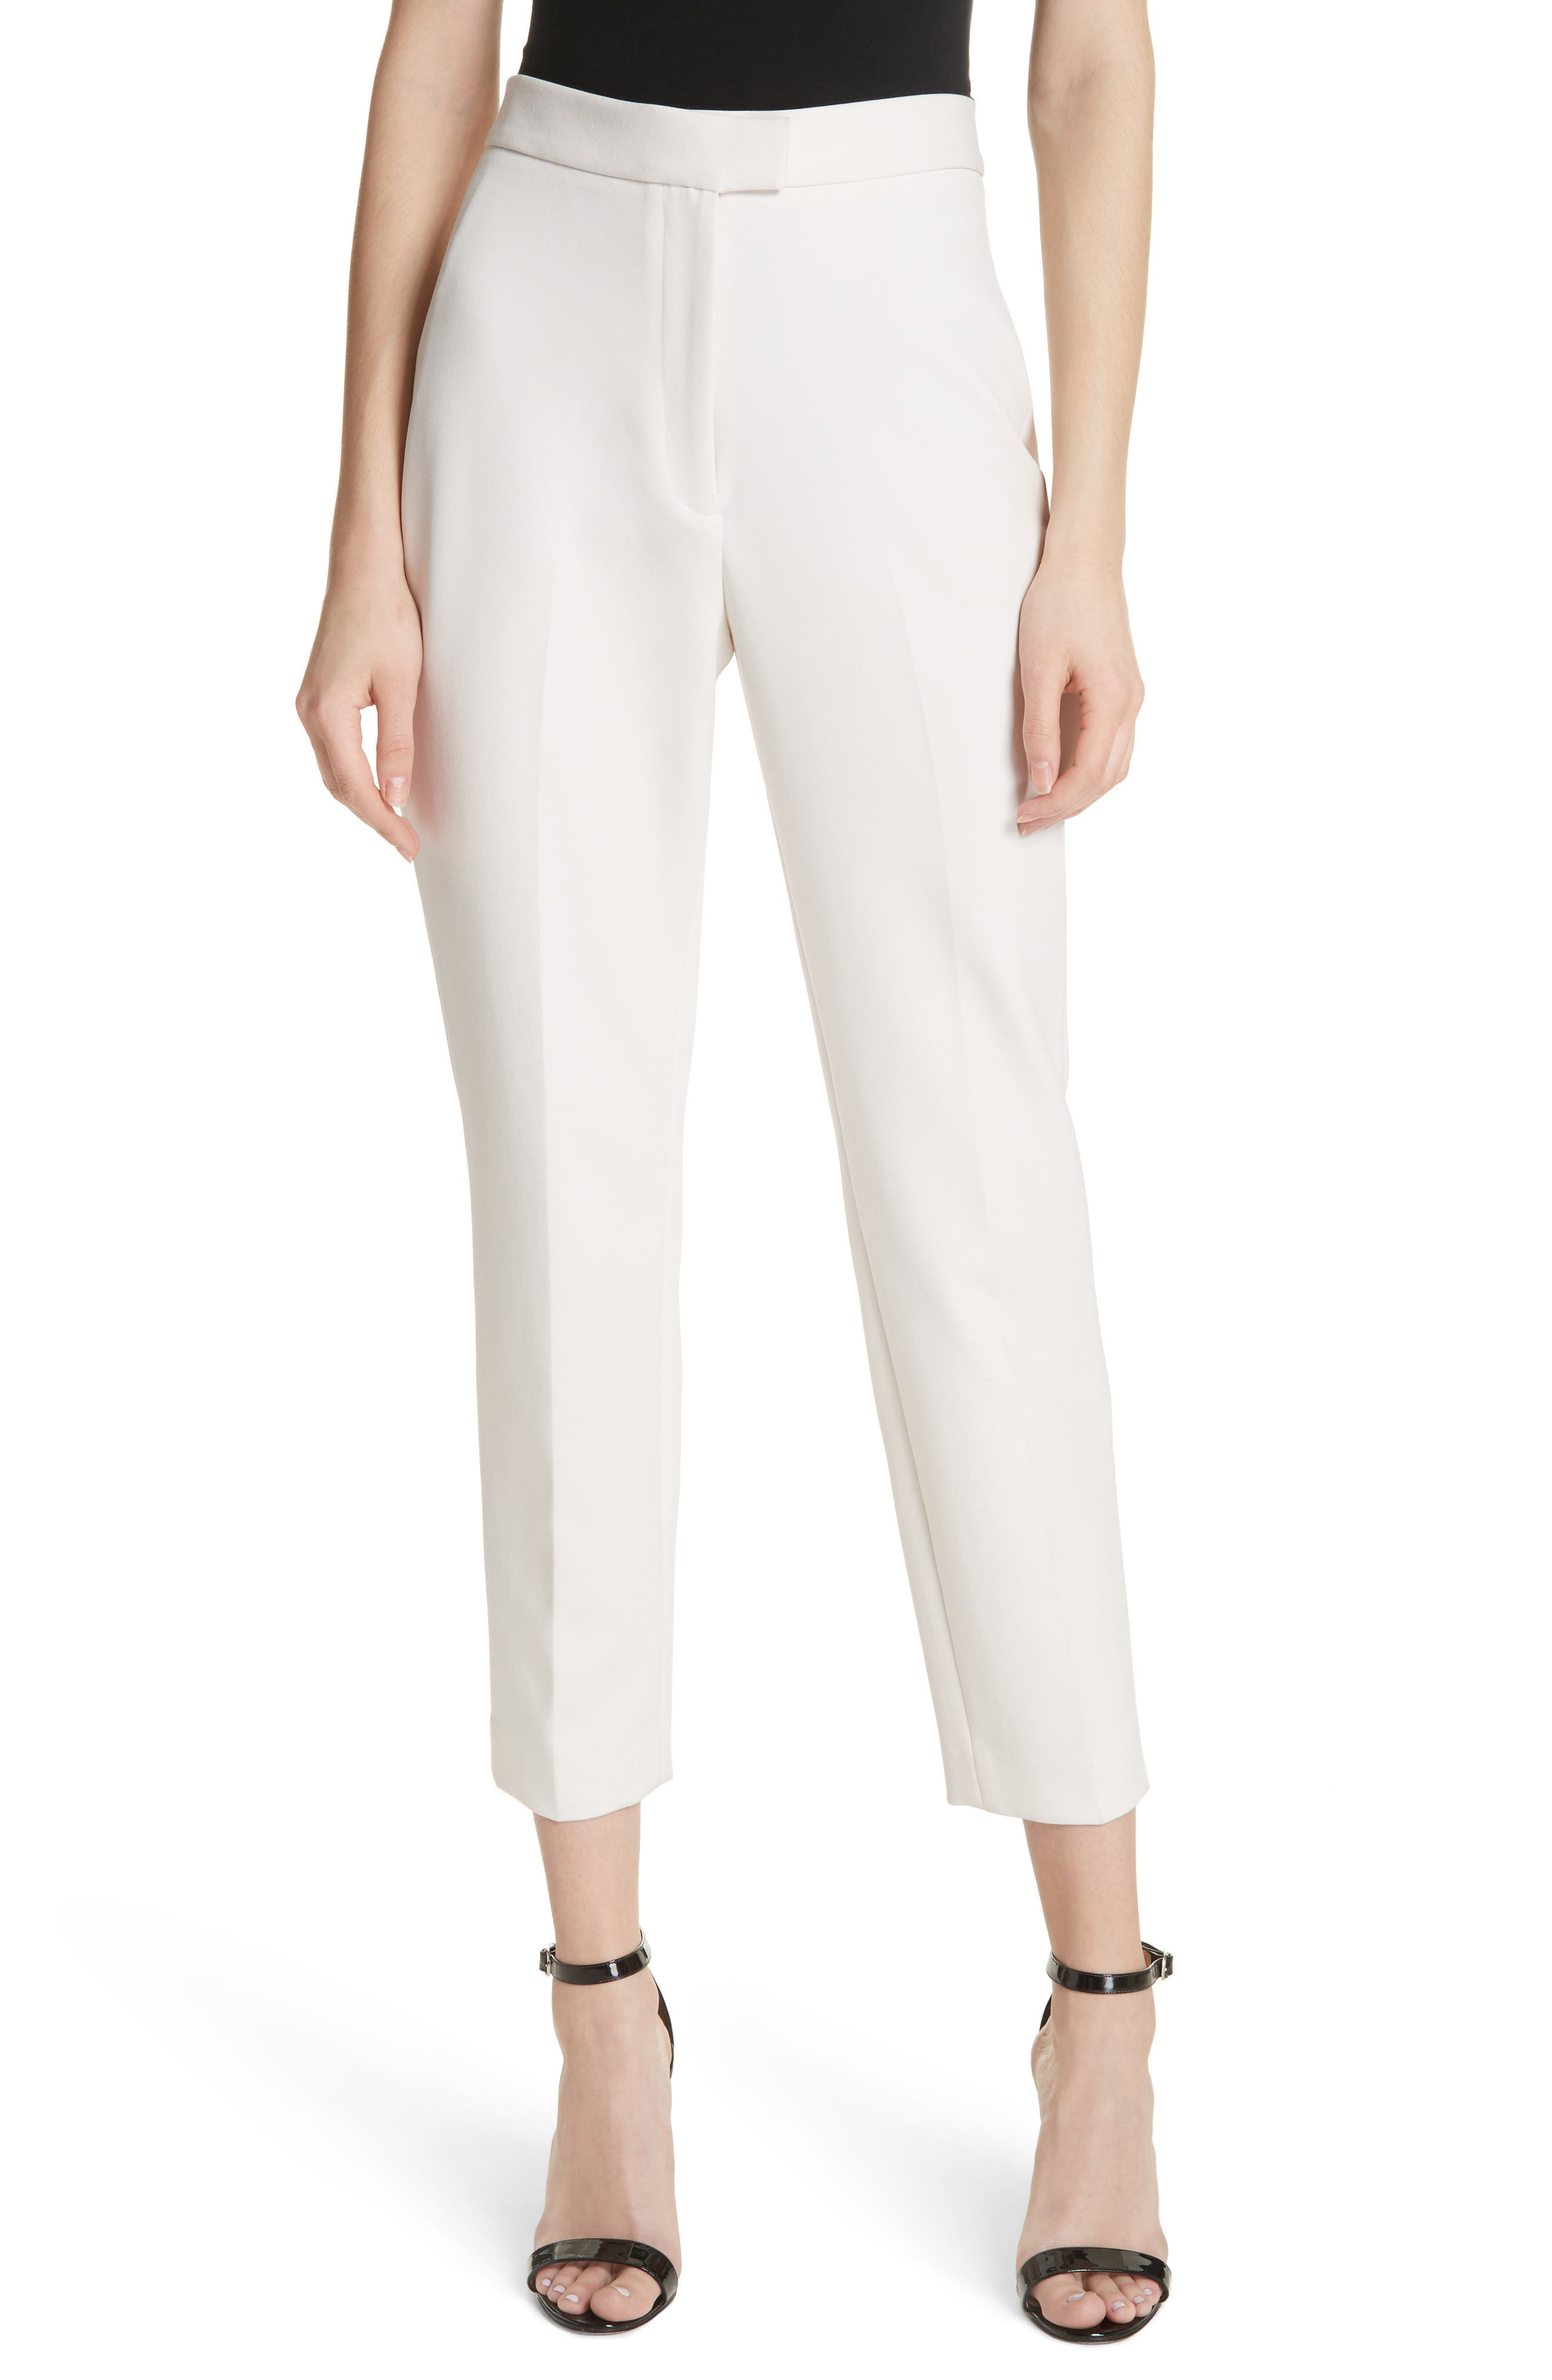 Milly High Waist Cigarette Pants